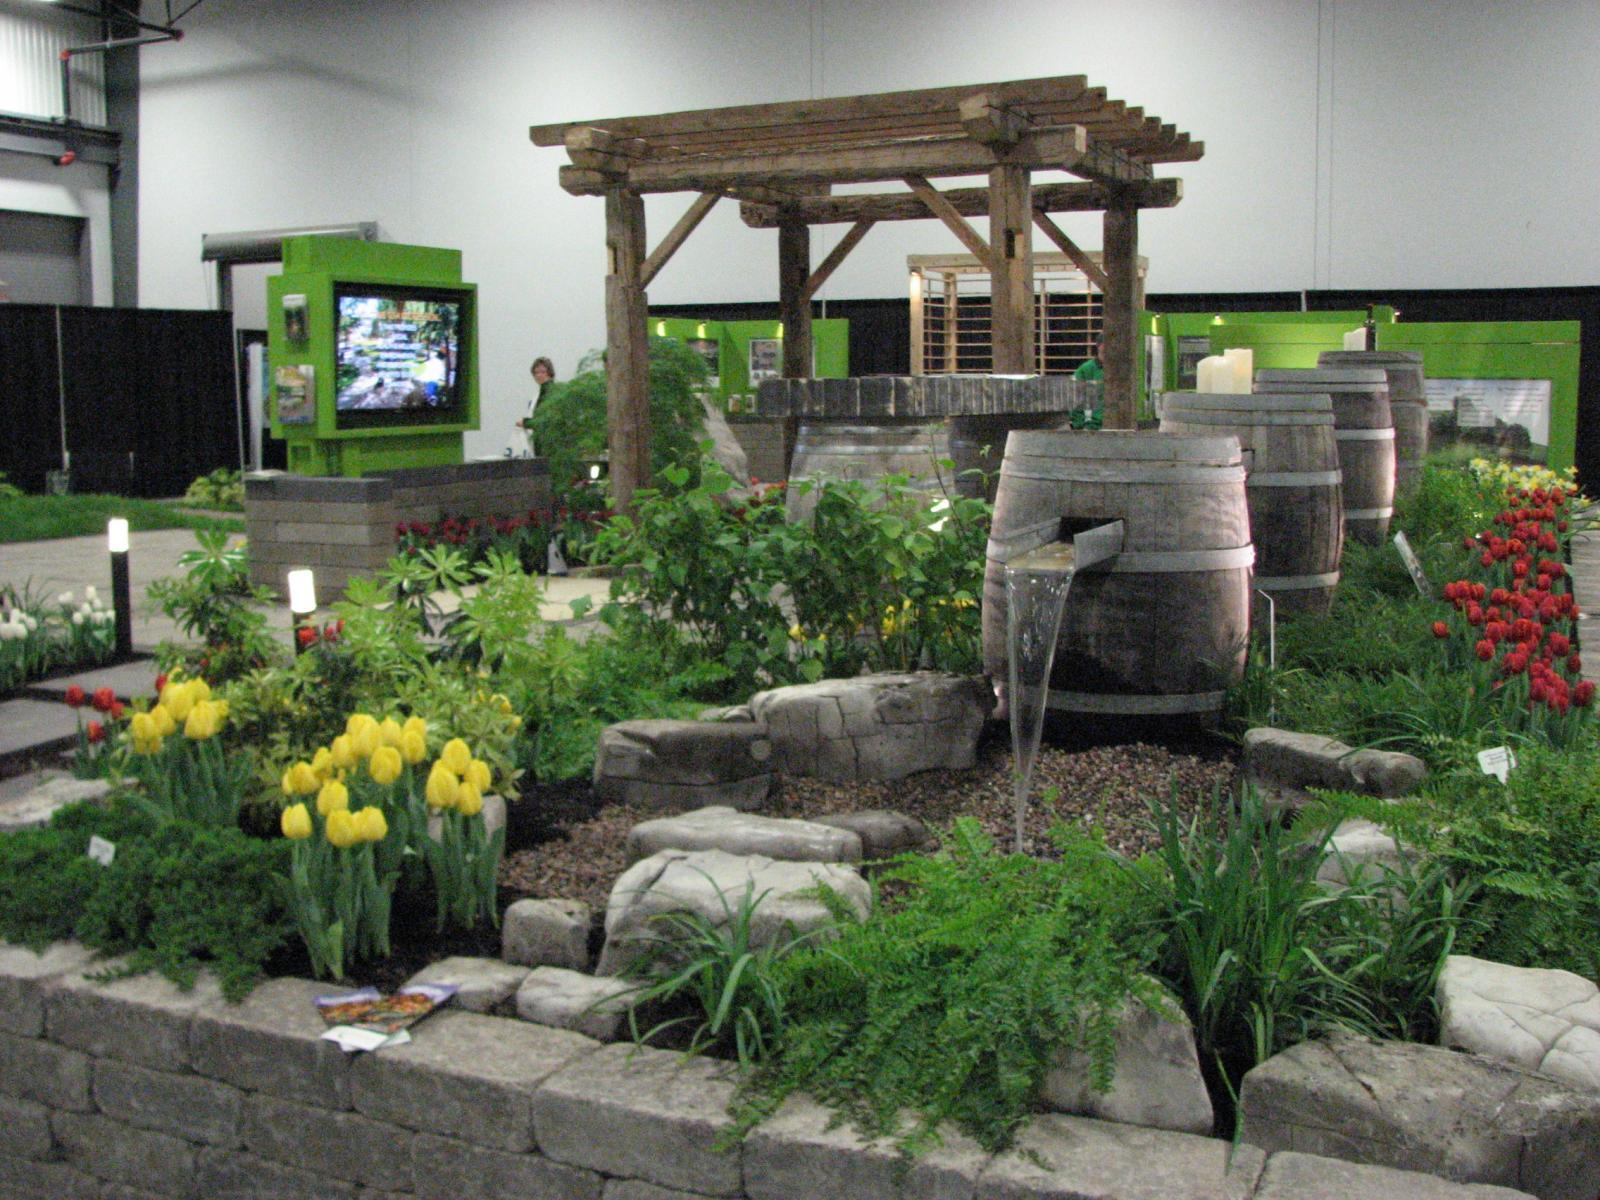 Ottawa Chapter Meeting at Living Landscapes March 21 10:00 am - 12:00 Noon Register today